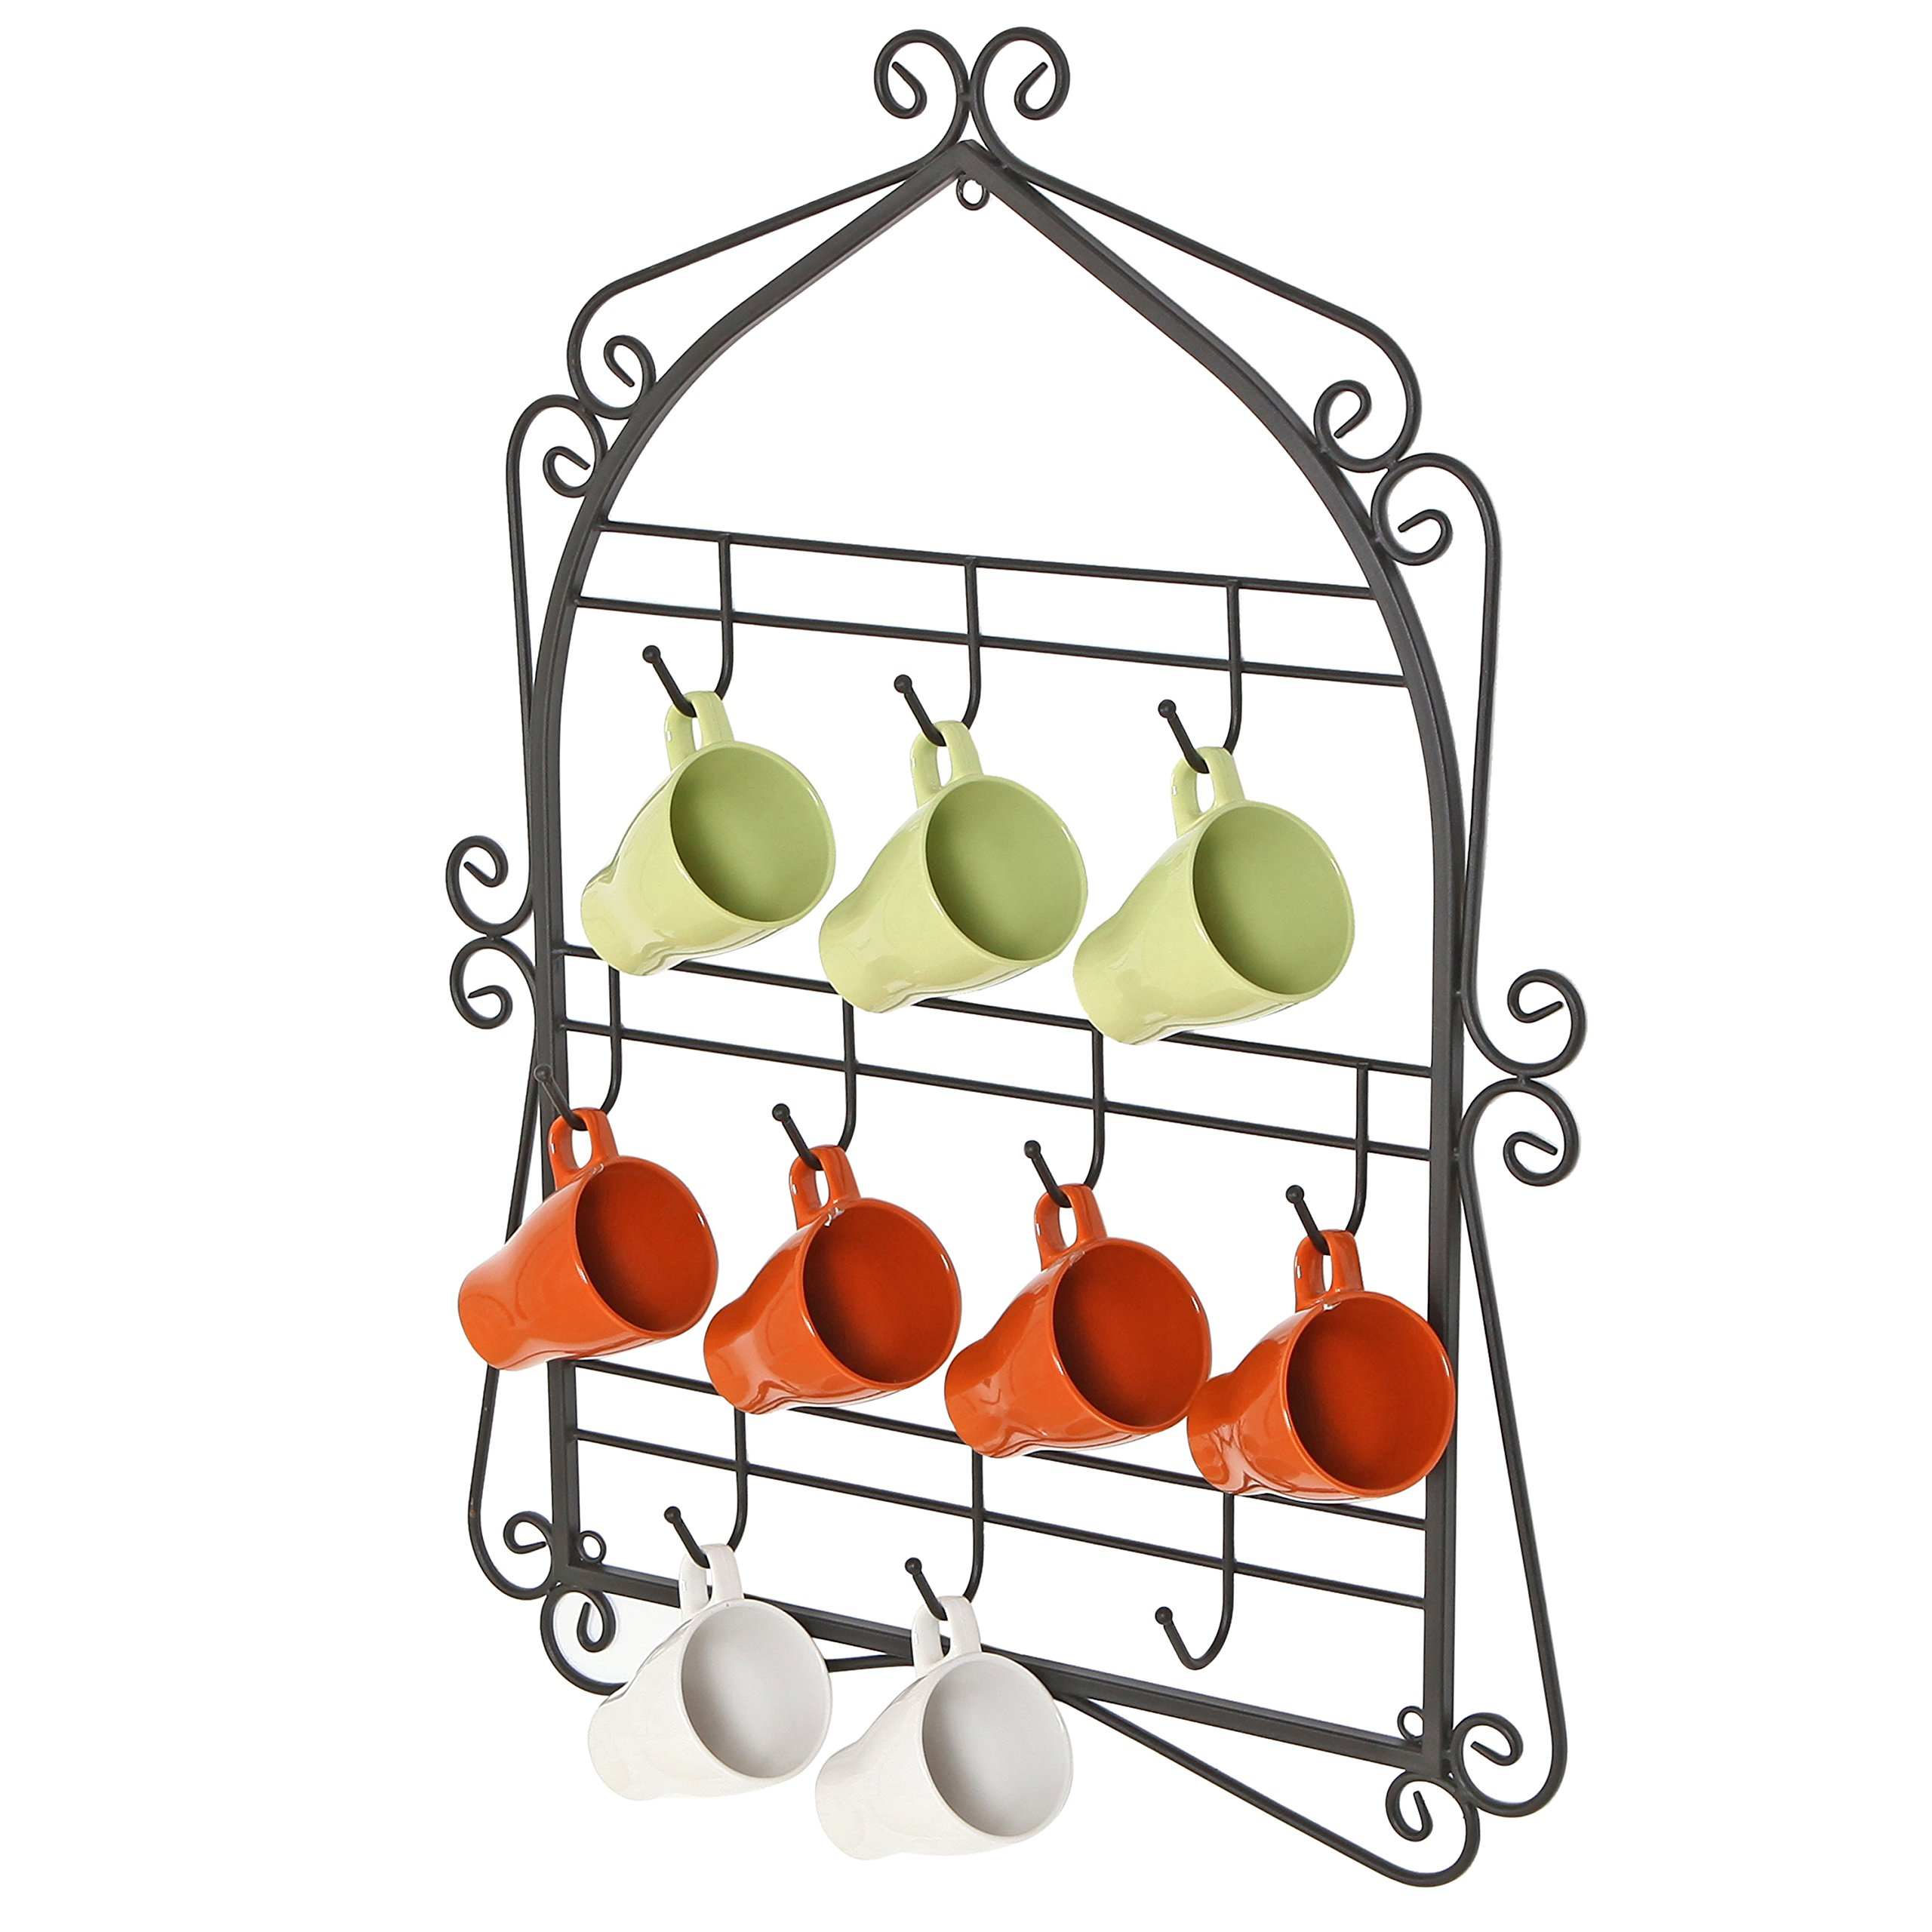 MyGift Wall Mounted 10 Hooks Mug Display Rack with Decorative Metal Scrollwork Design, Black by MyGift